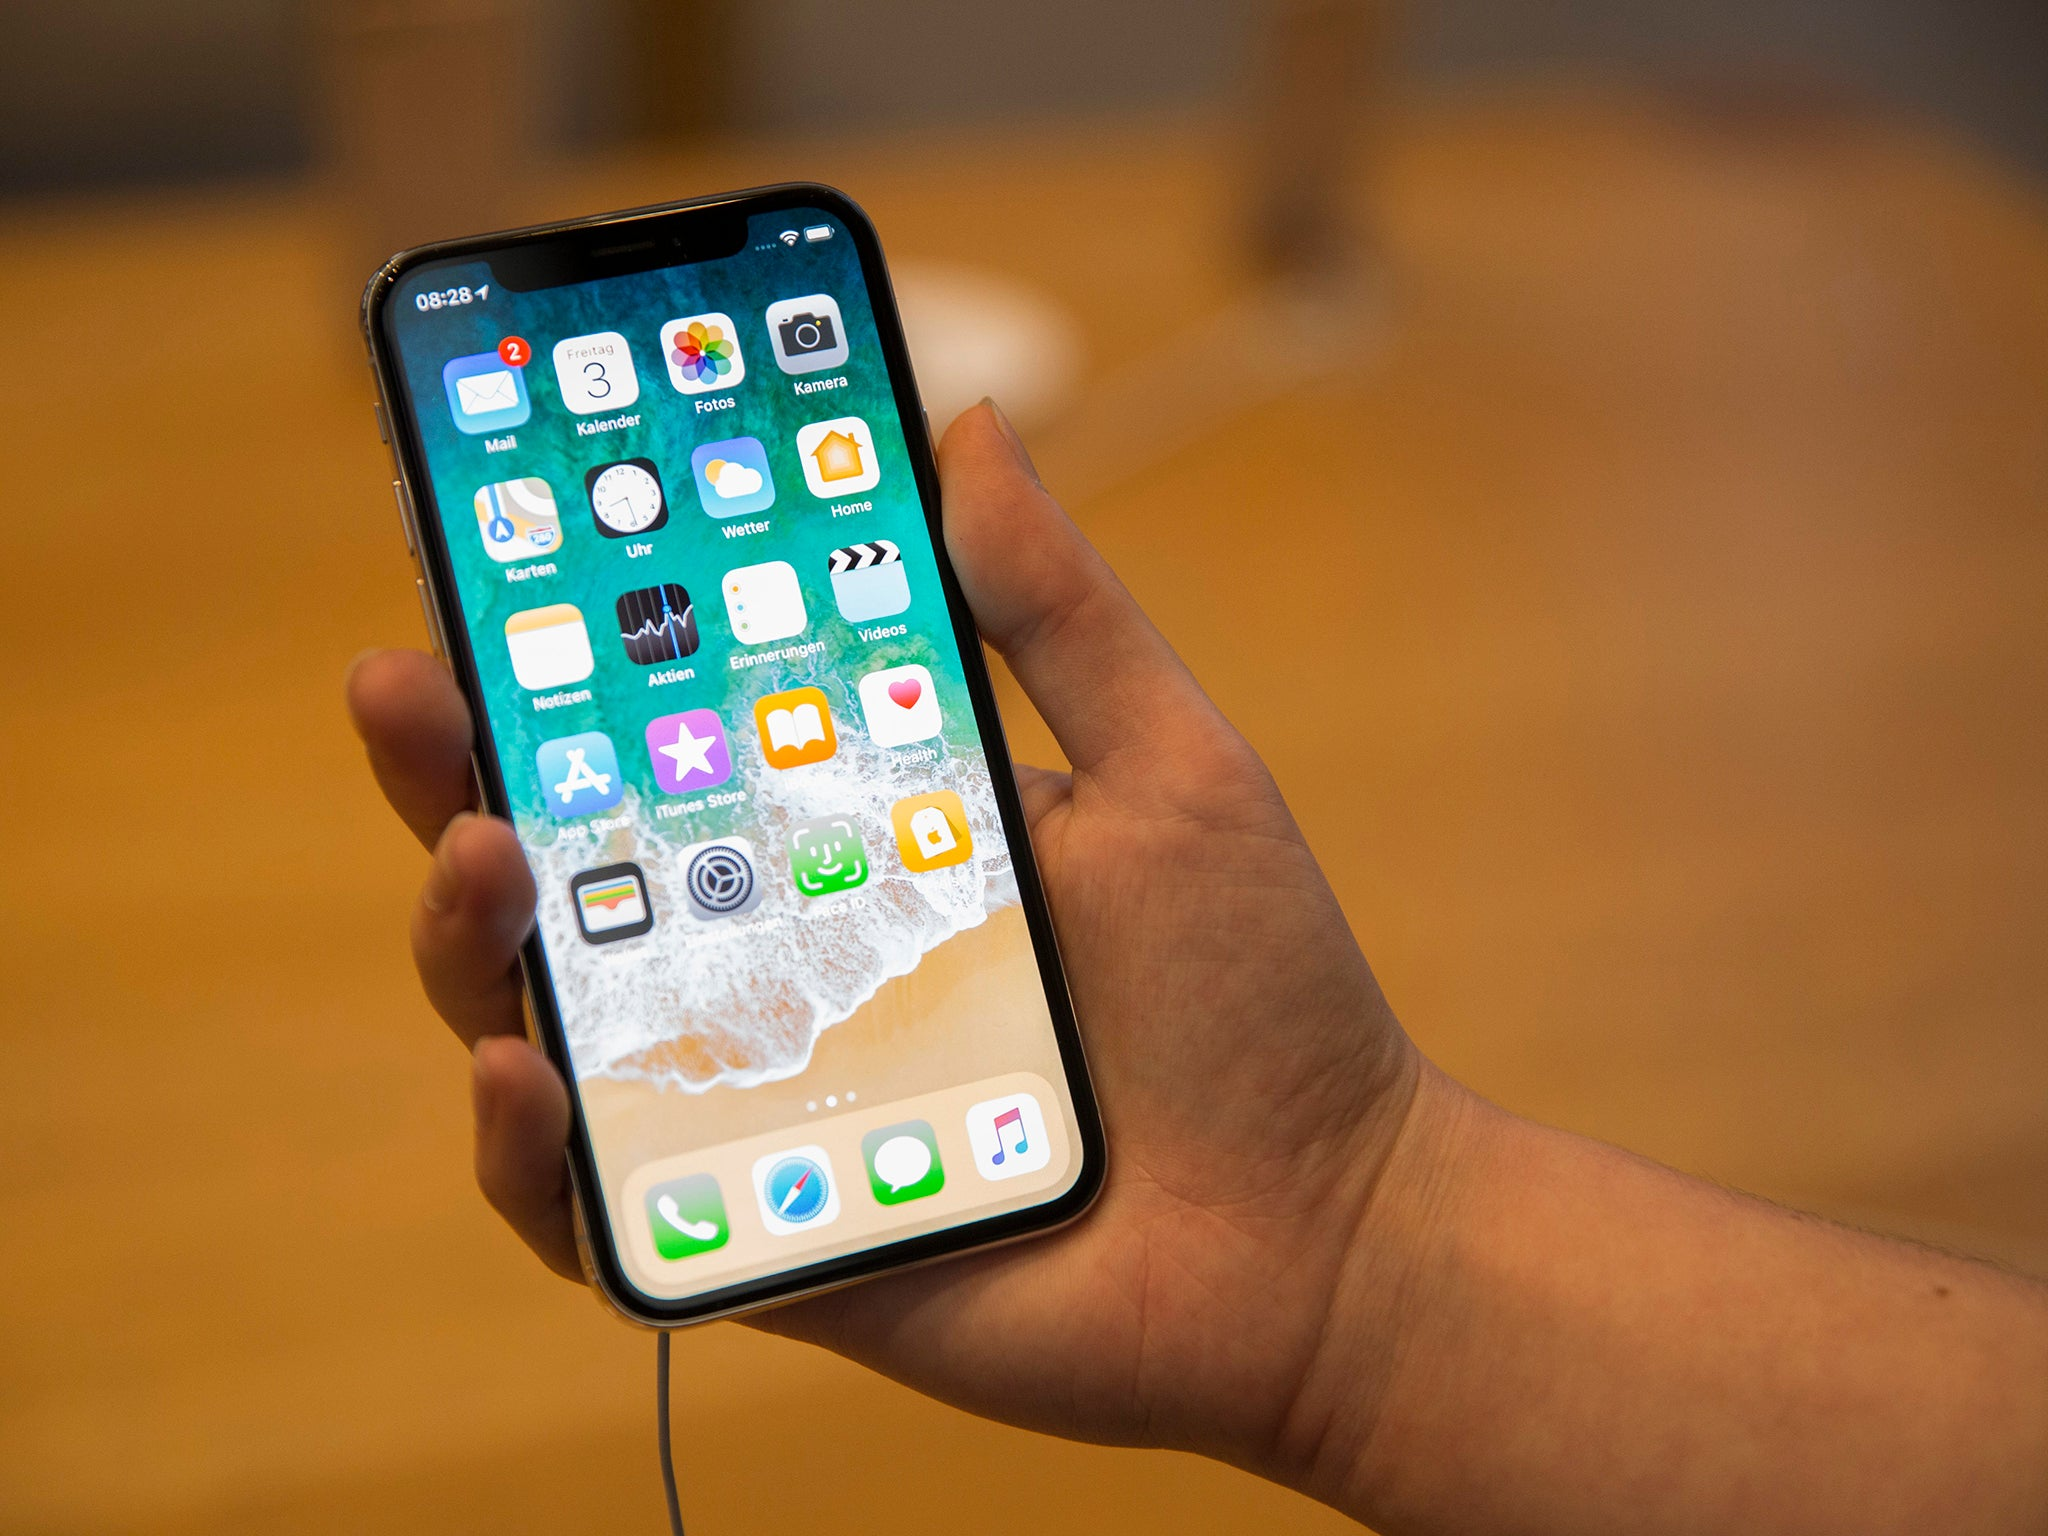 Apple 2018: New iPhone 9 or xi? Name, release date and